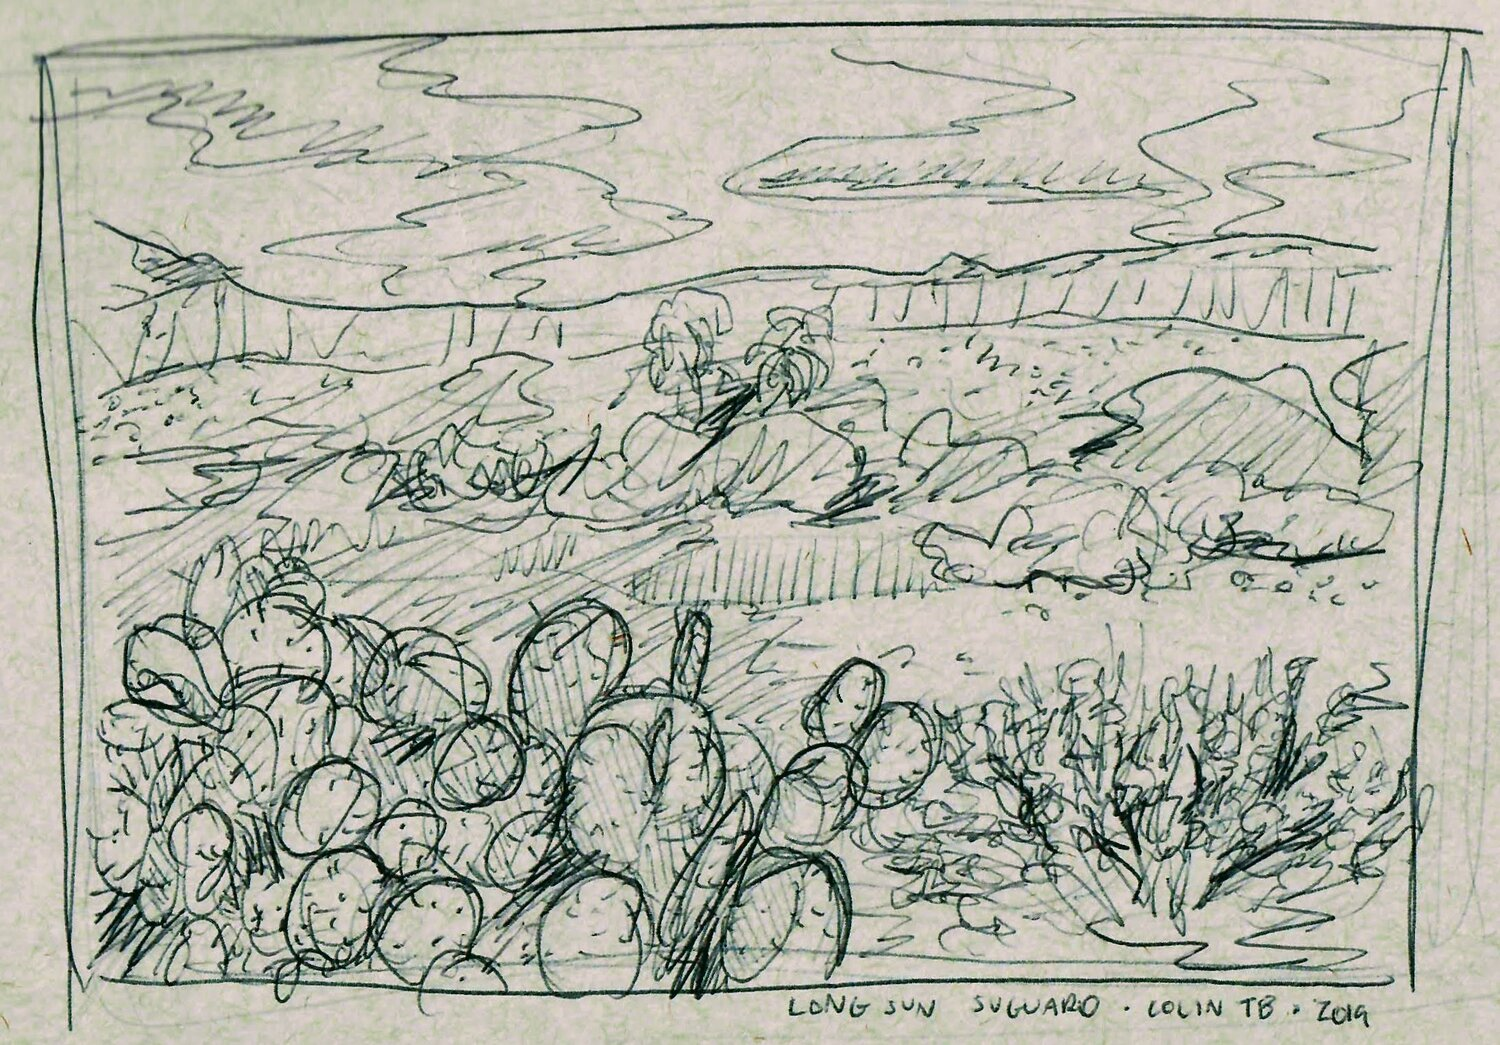 This is another sketch of some of the smaller cactus in Suguaro.